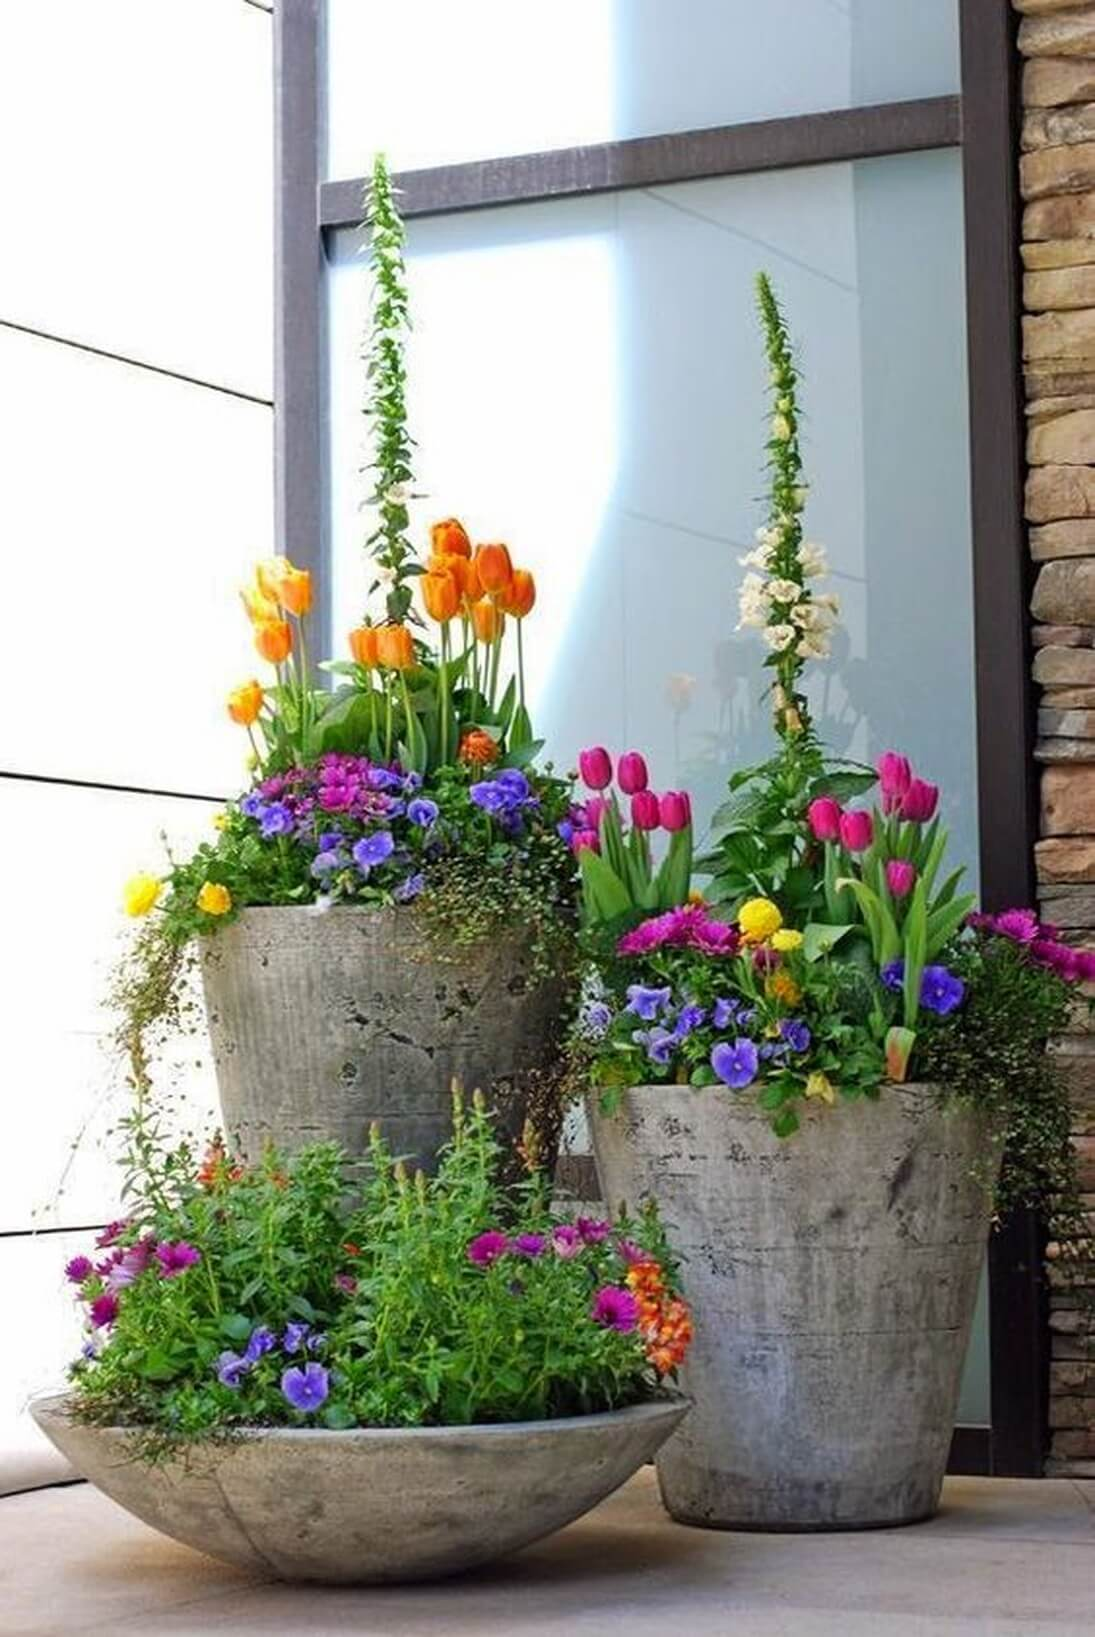 Welcome Spring 17 Great DIY Flower Pot Ideas for Front & √ Welcome Spring: 17 Great DIY Flower Pot Ideas for Front